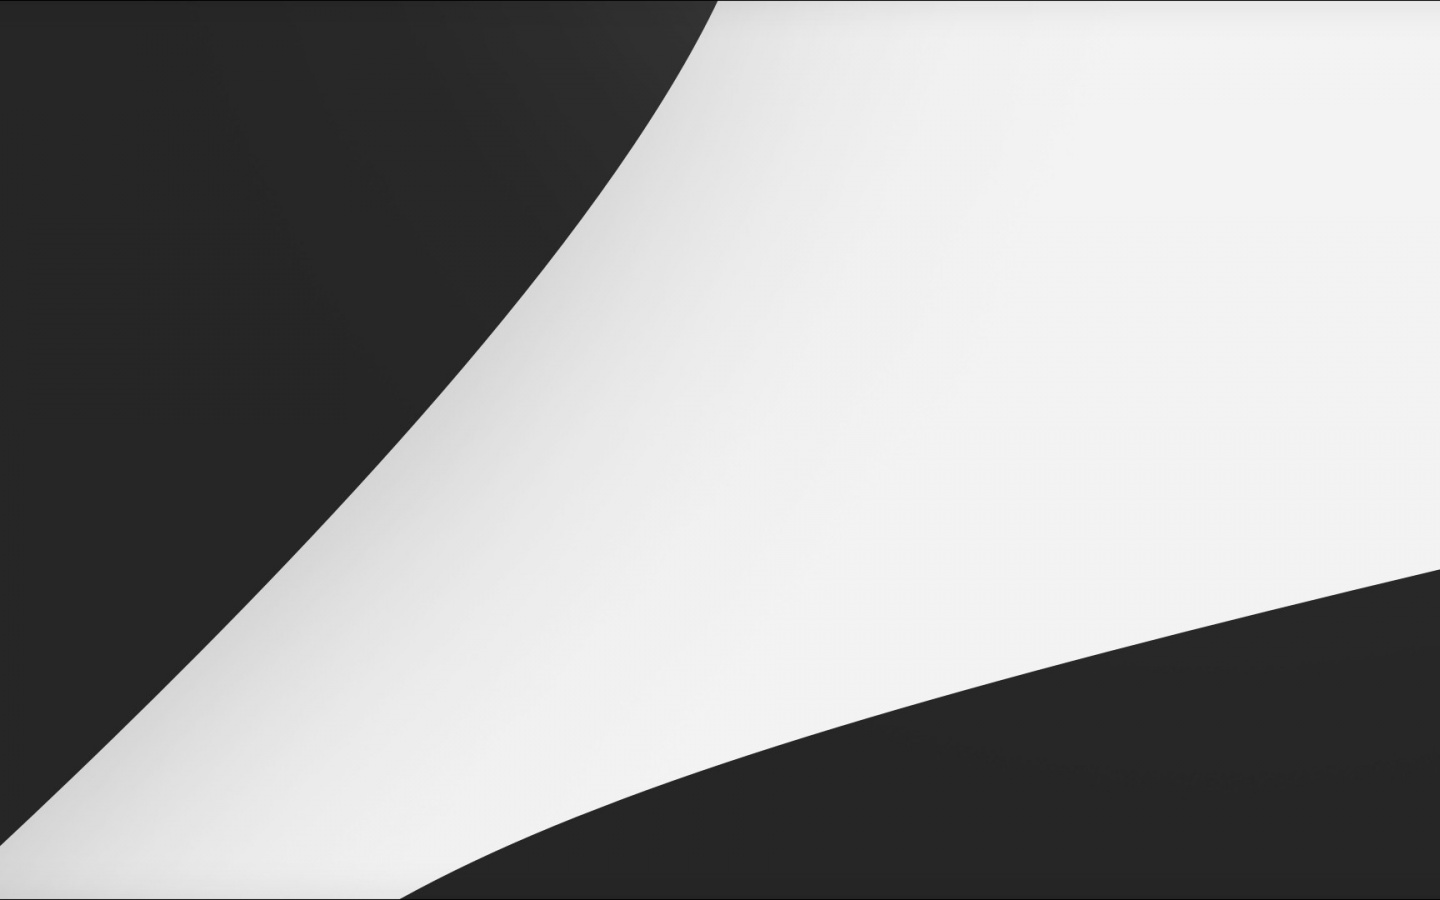 1440x900 Black and White Abstract desktop PC and Mac wallpaper